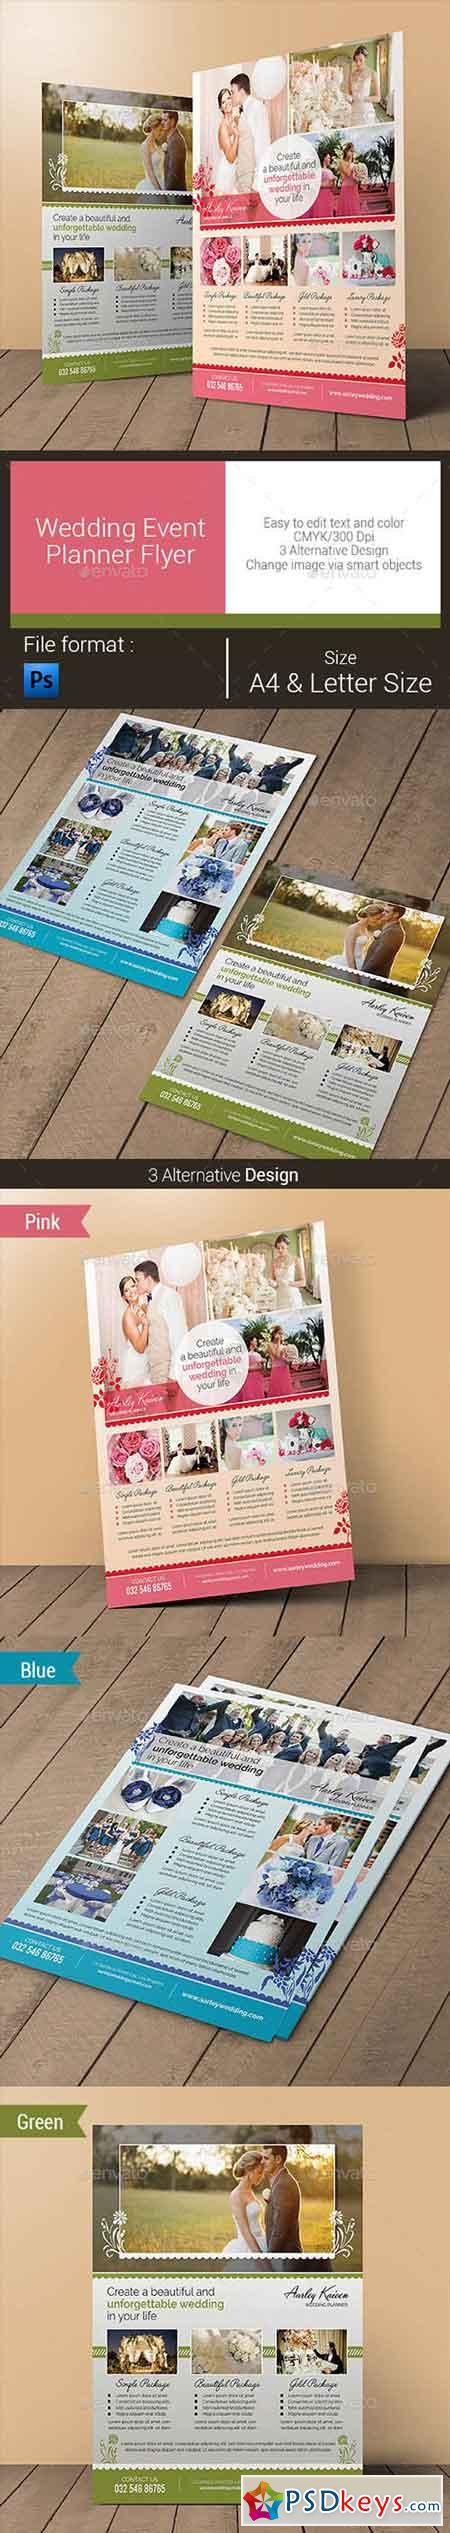 Wedding Event Planner Flyer 10796720